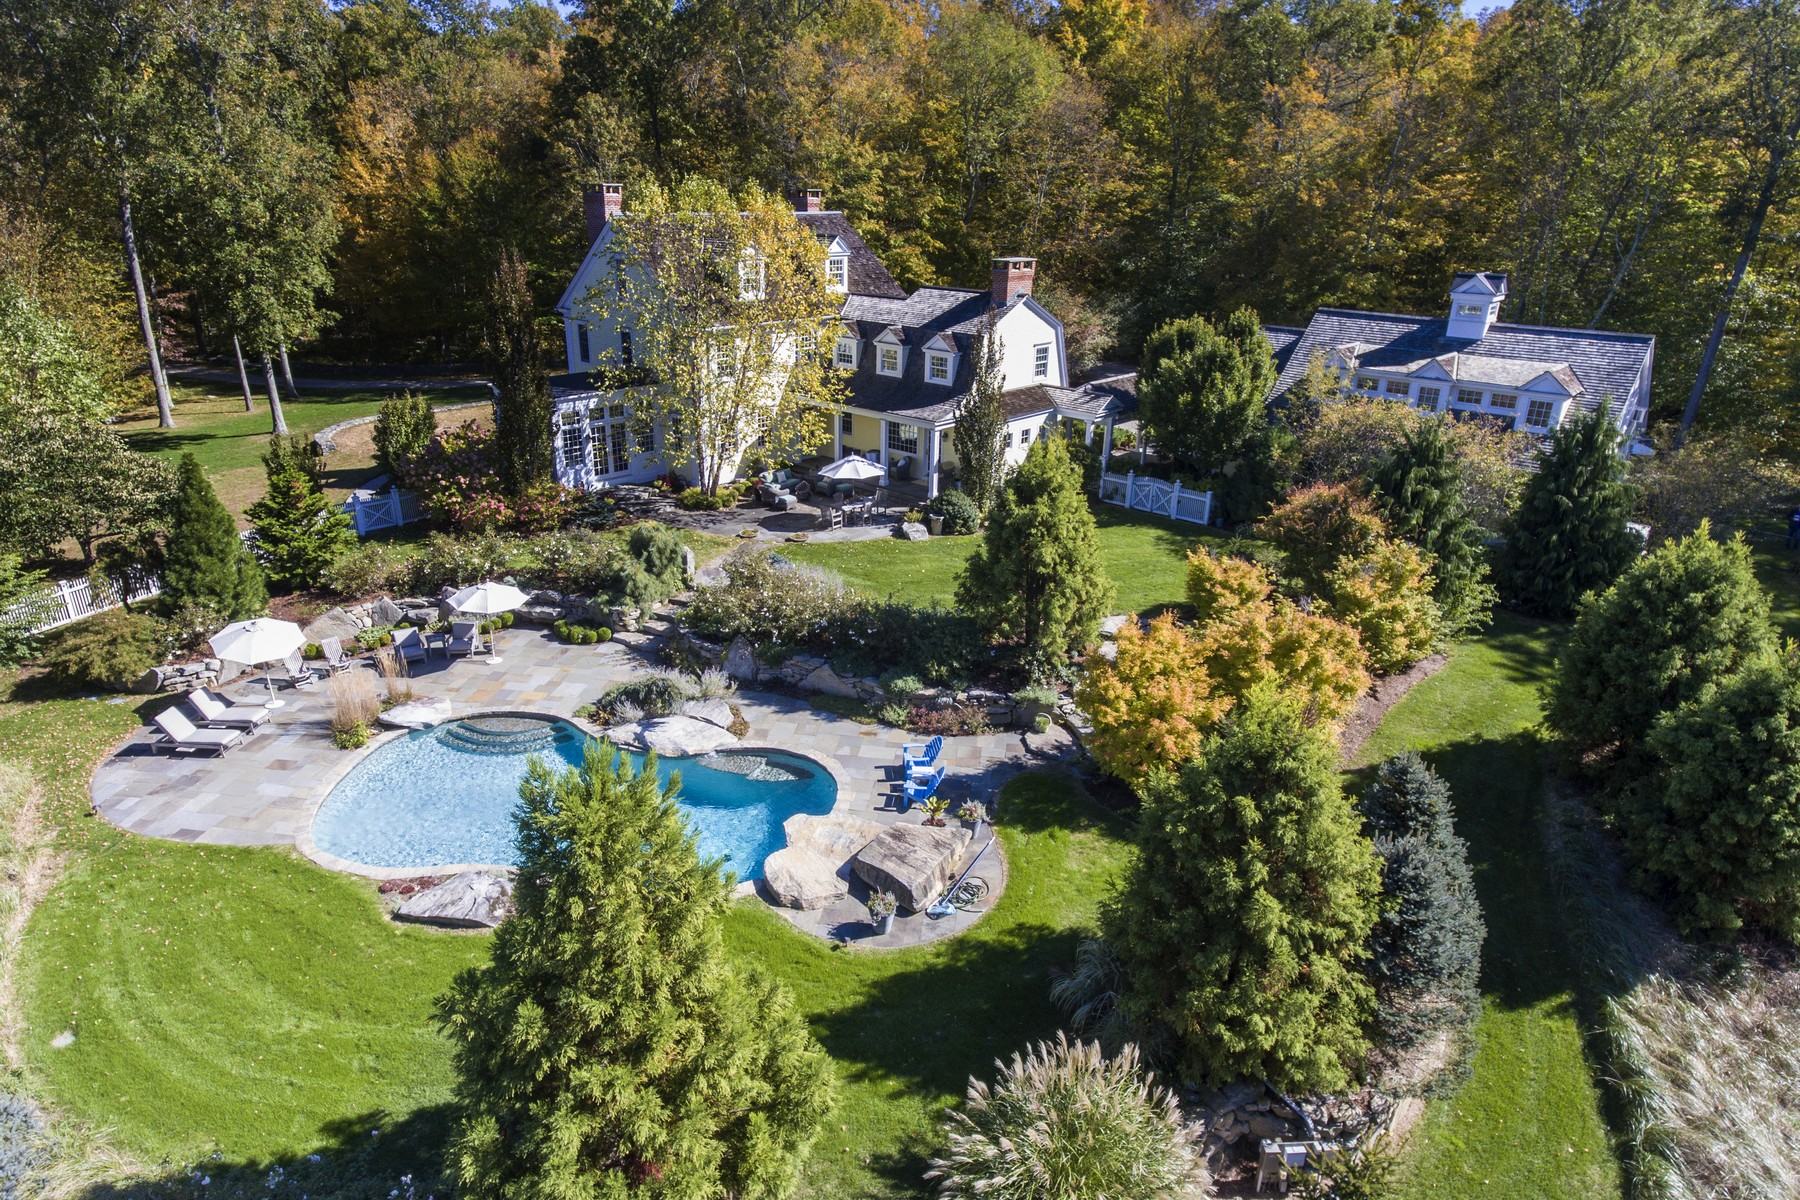 Maison unifamiliale pour l Vente à Resort Living on 33 Acres, Custom Home 123 Brush Hill Rd Lyme, Connecticut, 06371 États-Unis